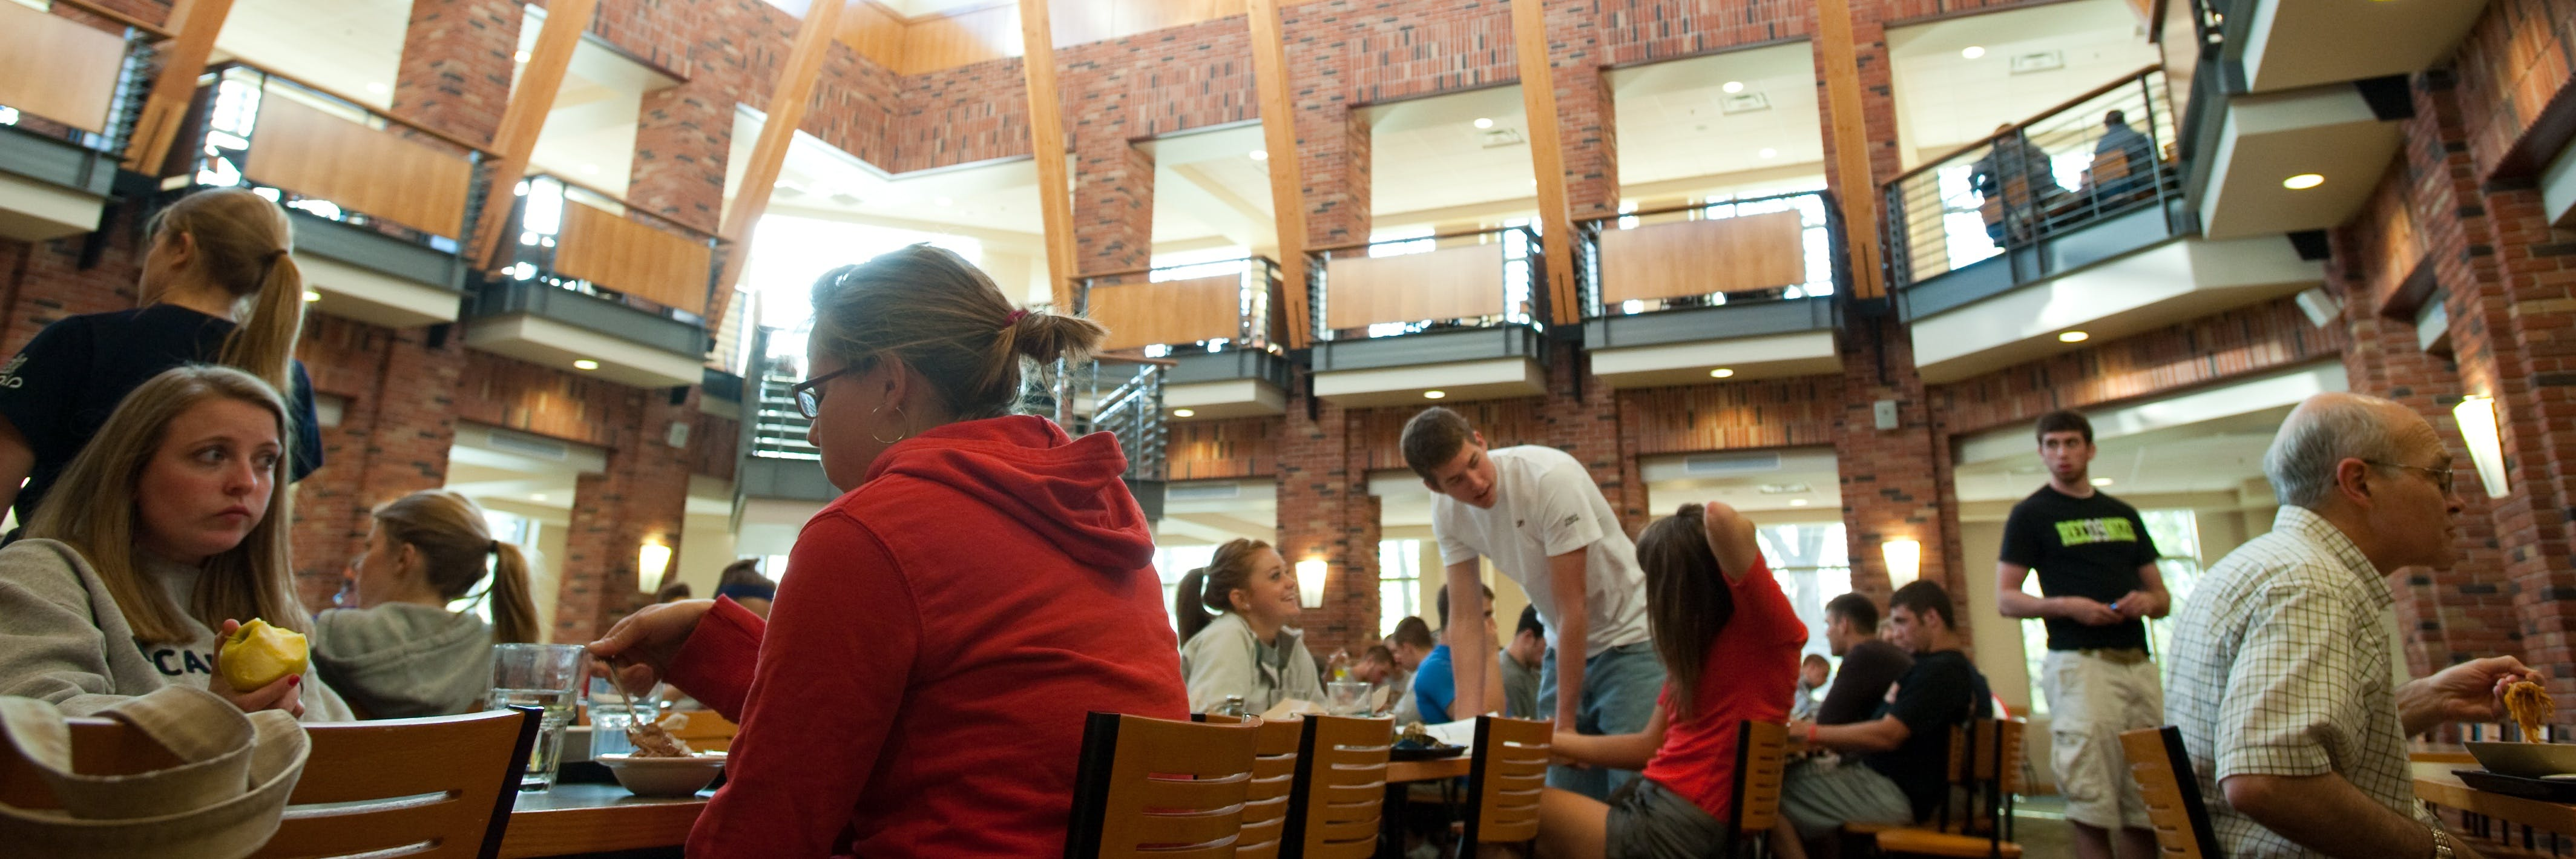 Students eating in the Monson Dining Center